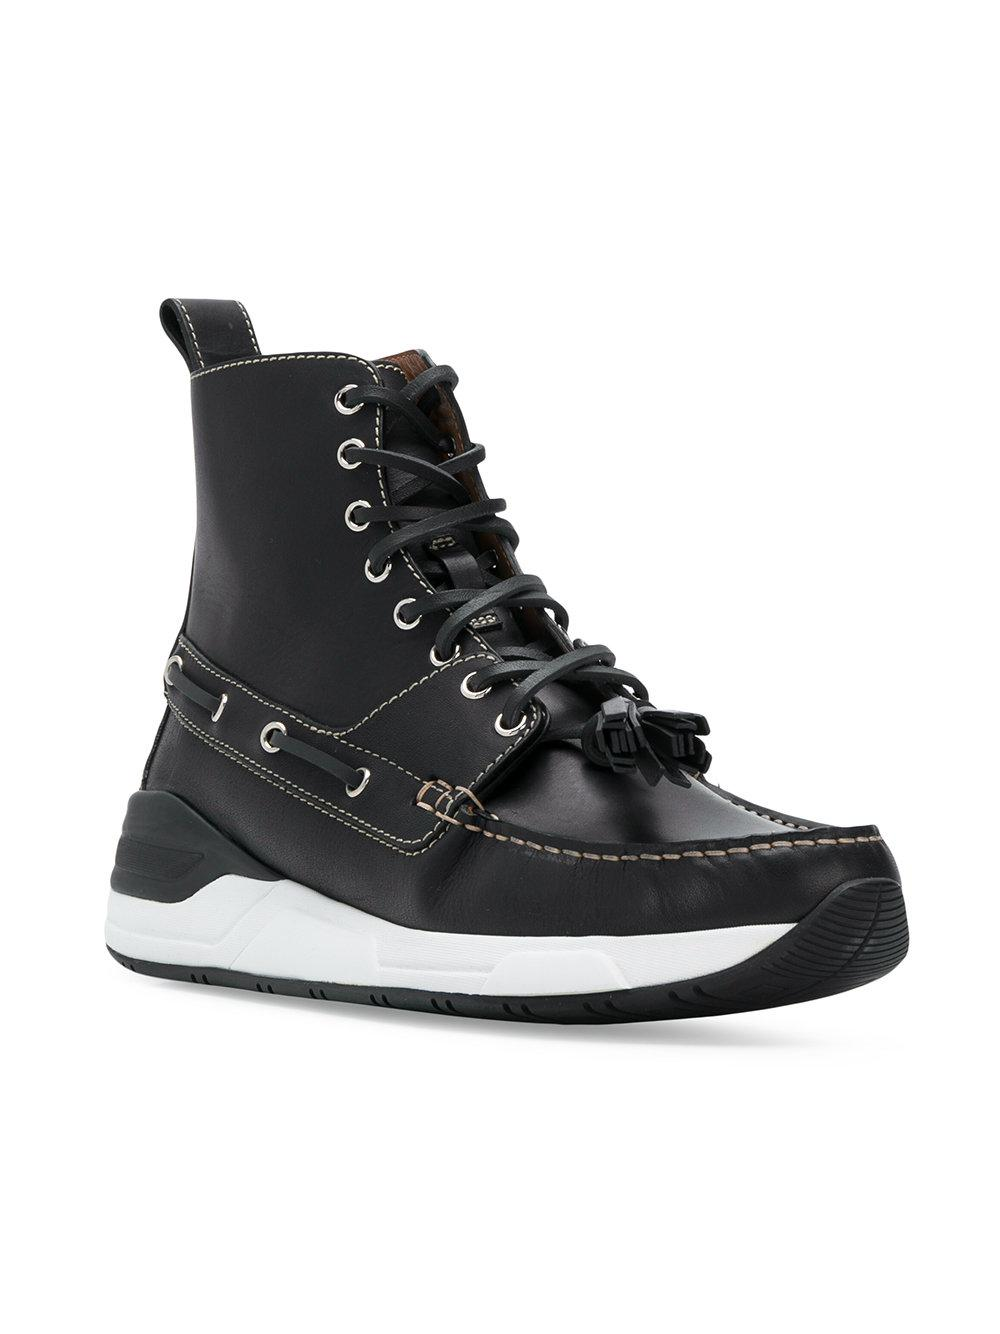 9970885ef75 Givenchy Loafer Hi-top Sneakers in Black for Men - Lyst